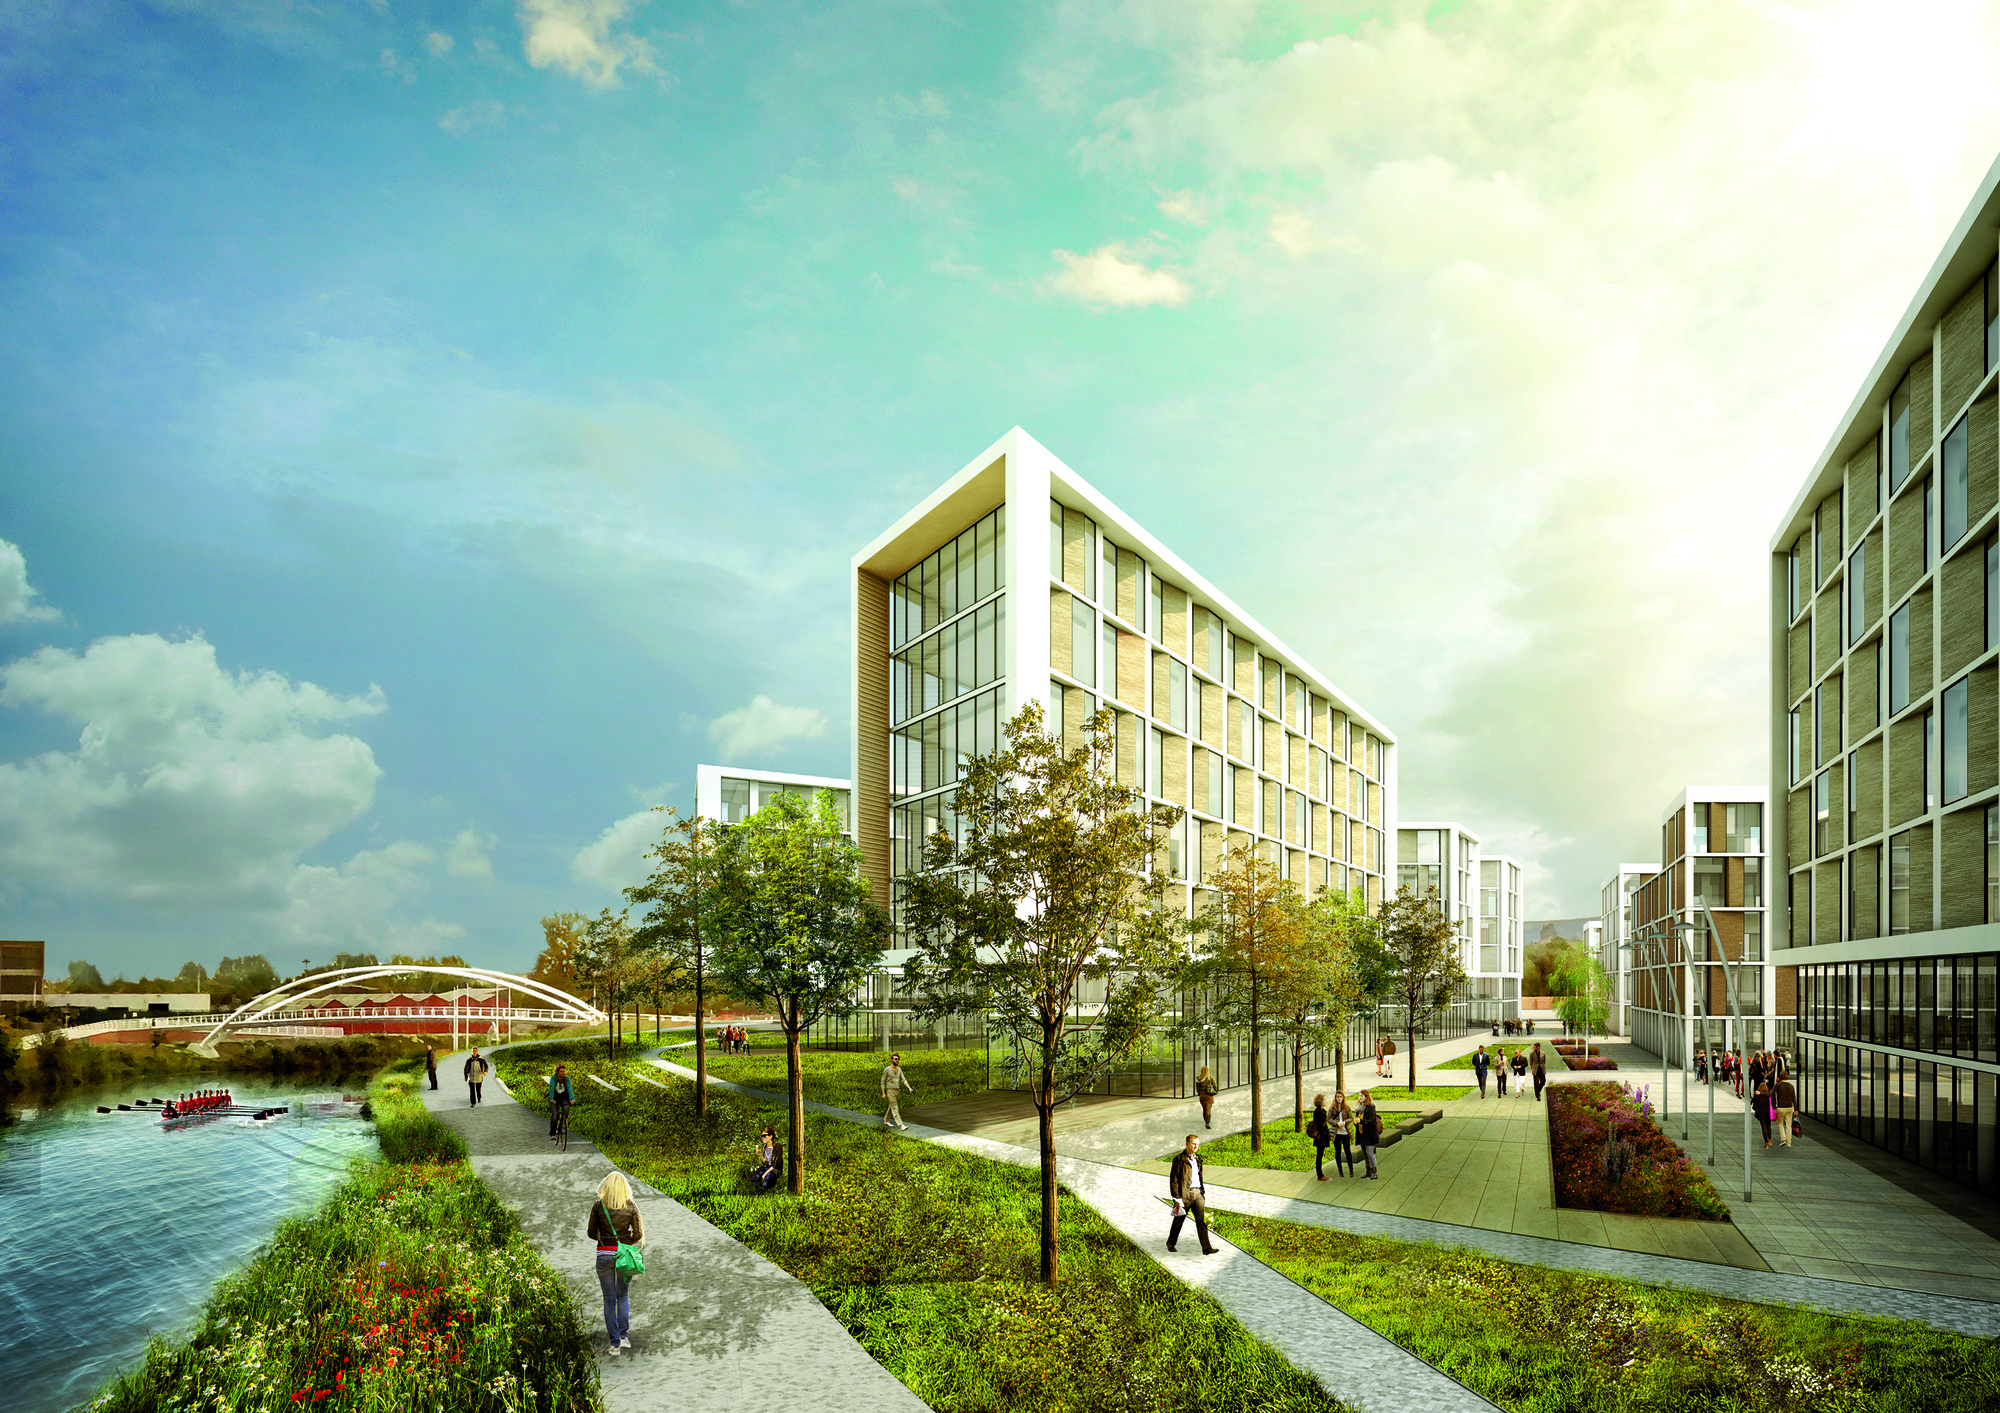 7N Architects Reveal Glasgow Masterplan, Courtesy of 7N Architects